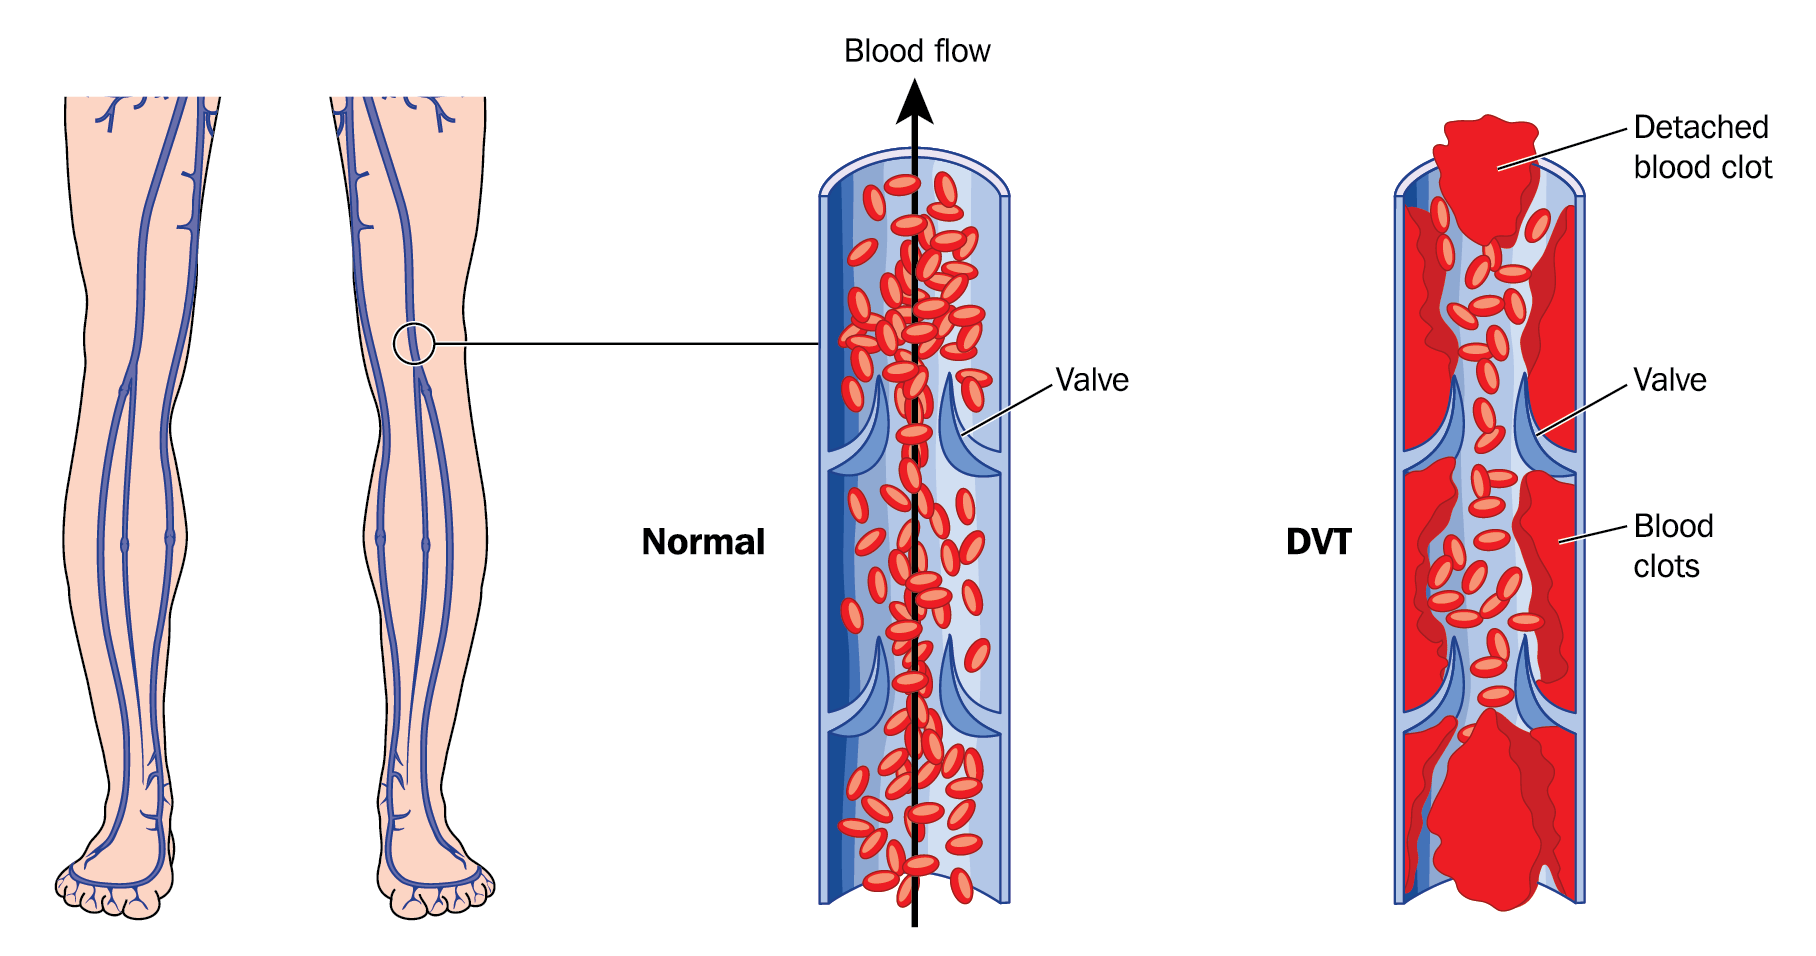 Diagram comparing normal vein to DVT affected vien and importance of leg ulcer treatment